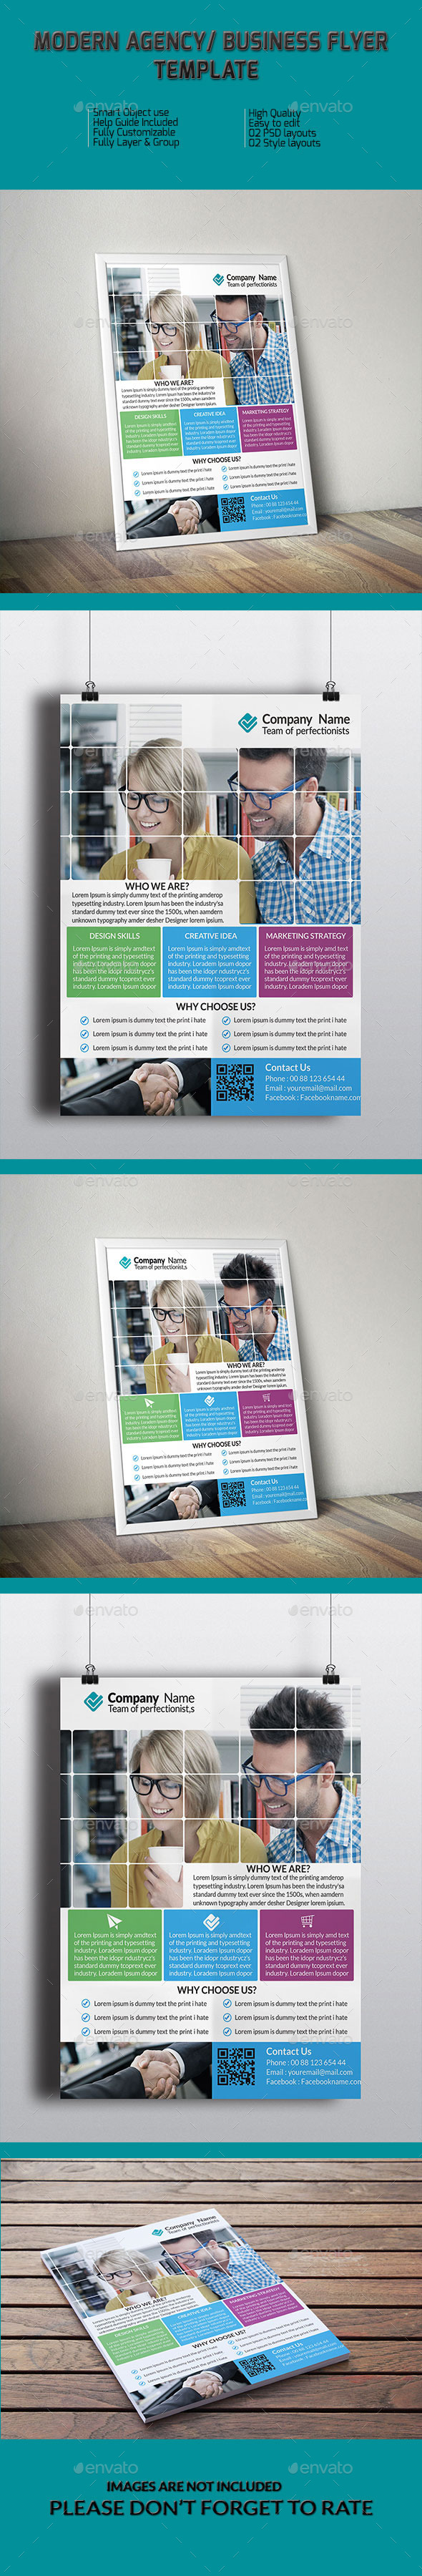 Modern Agency/ Business Flyer Template - Corporate Flyers